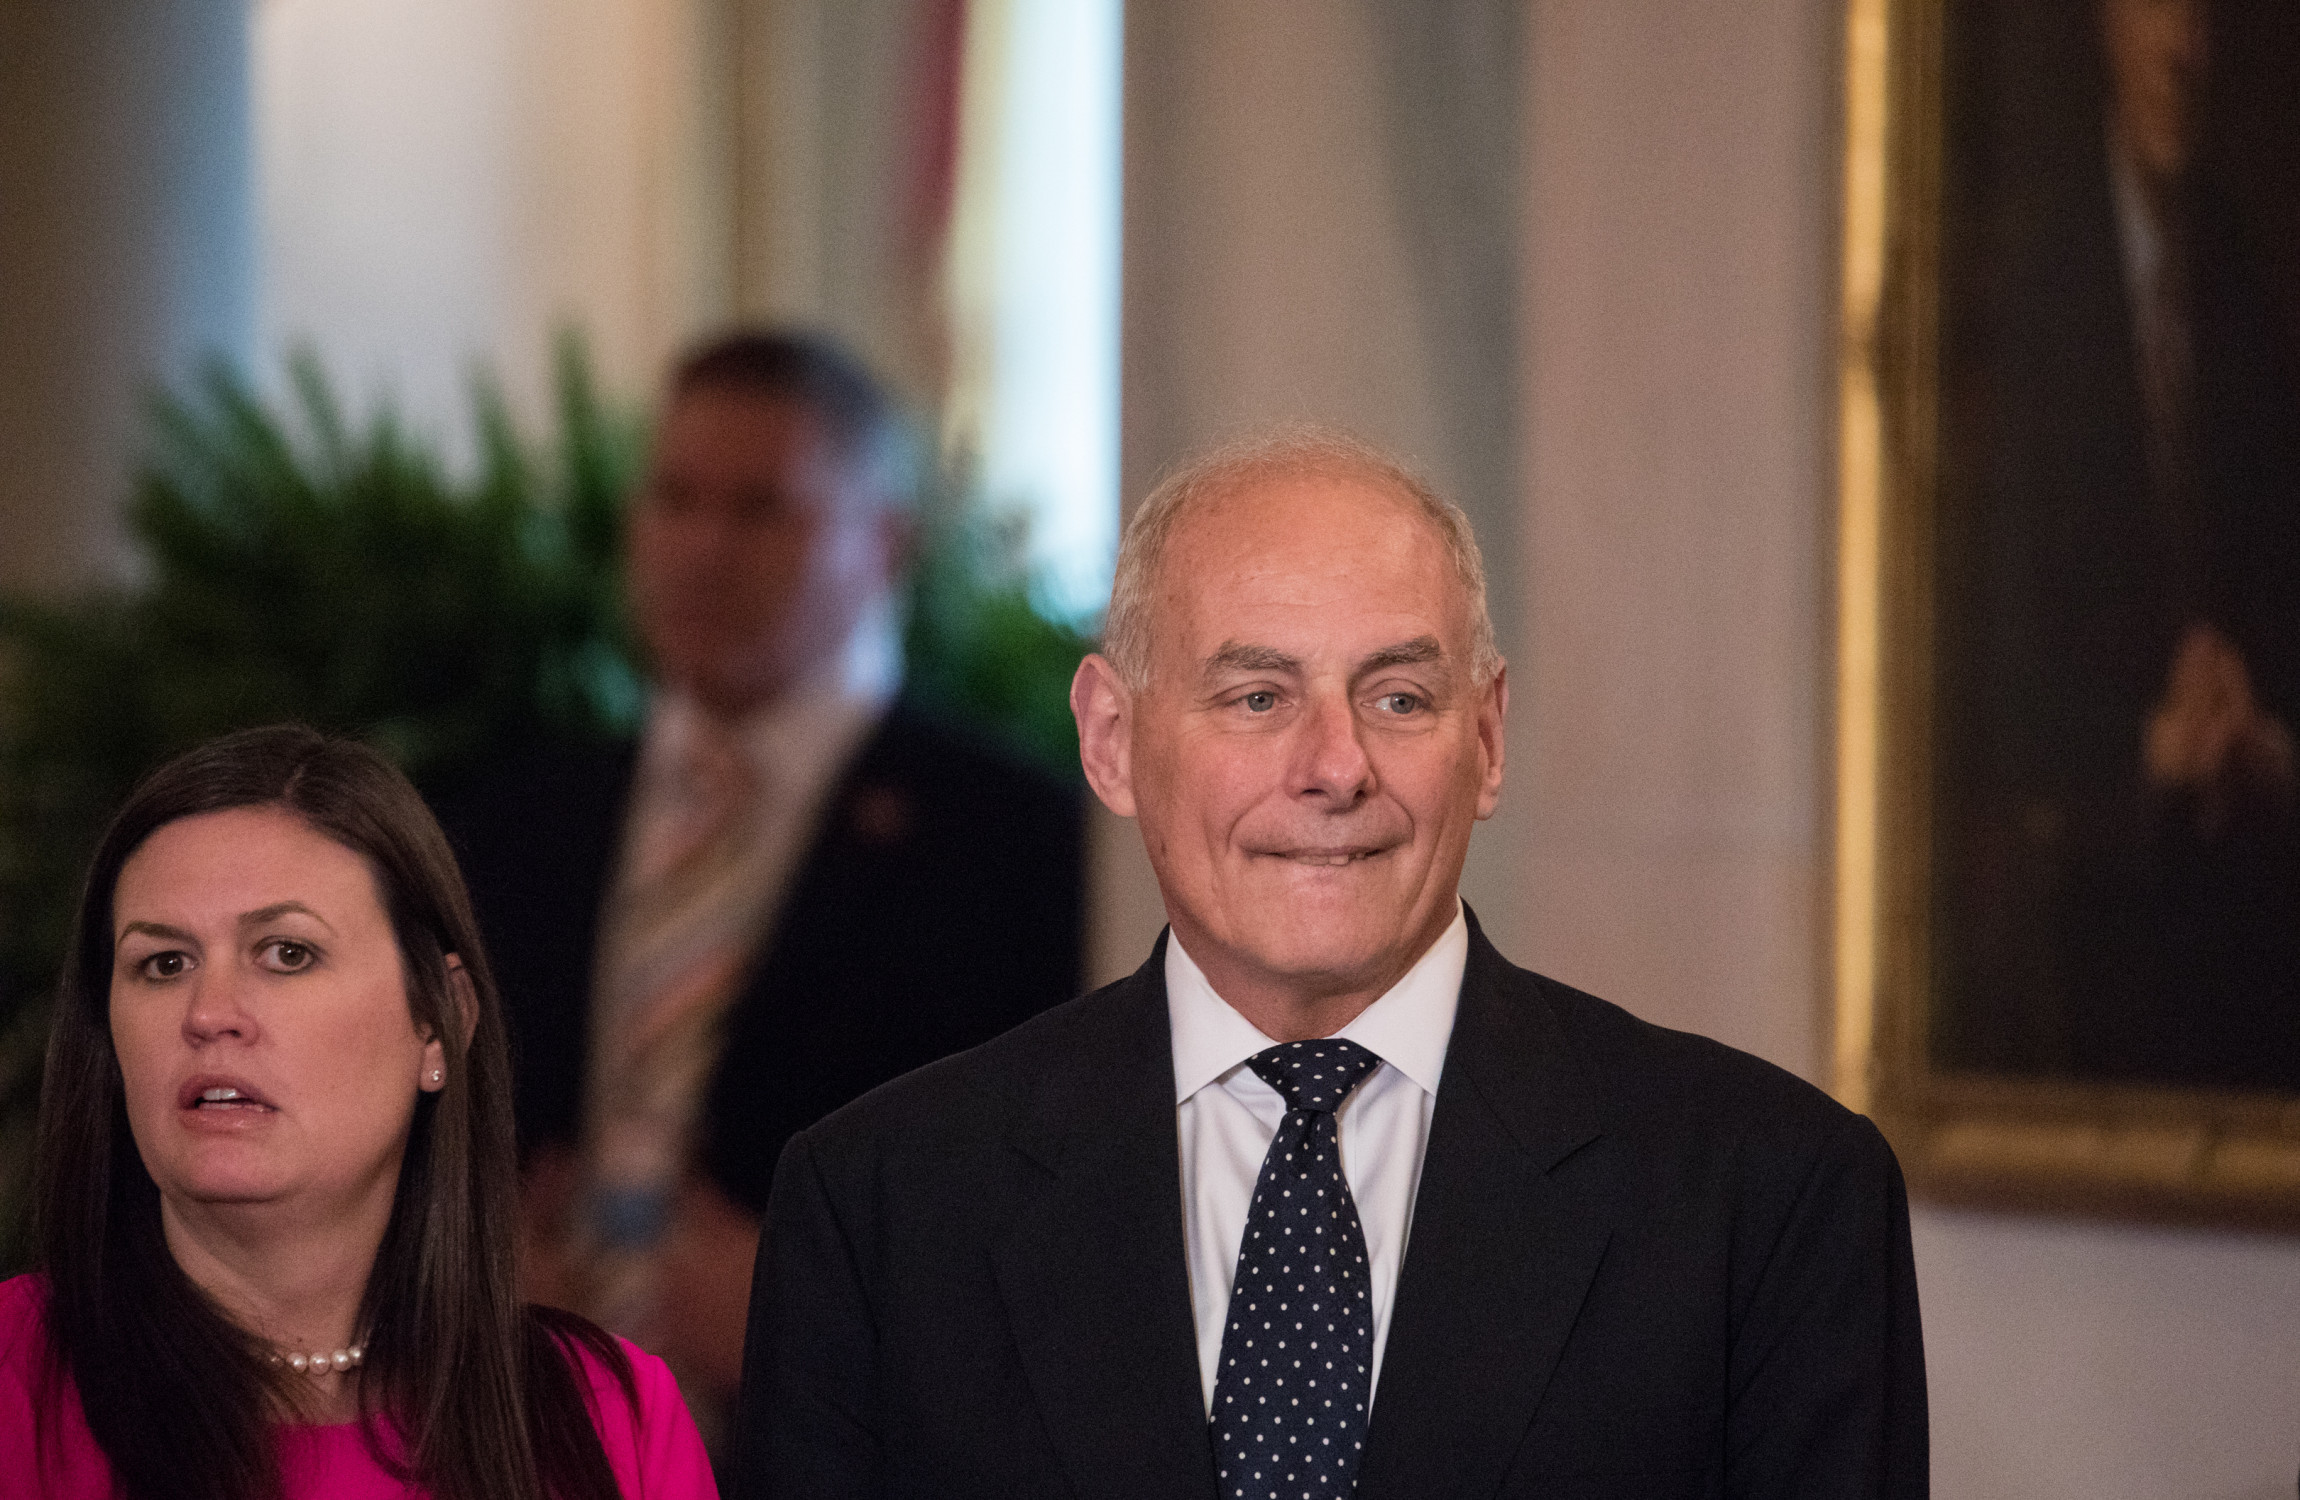 John Kelly Castigates Media: